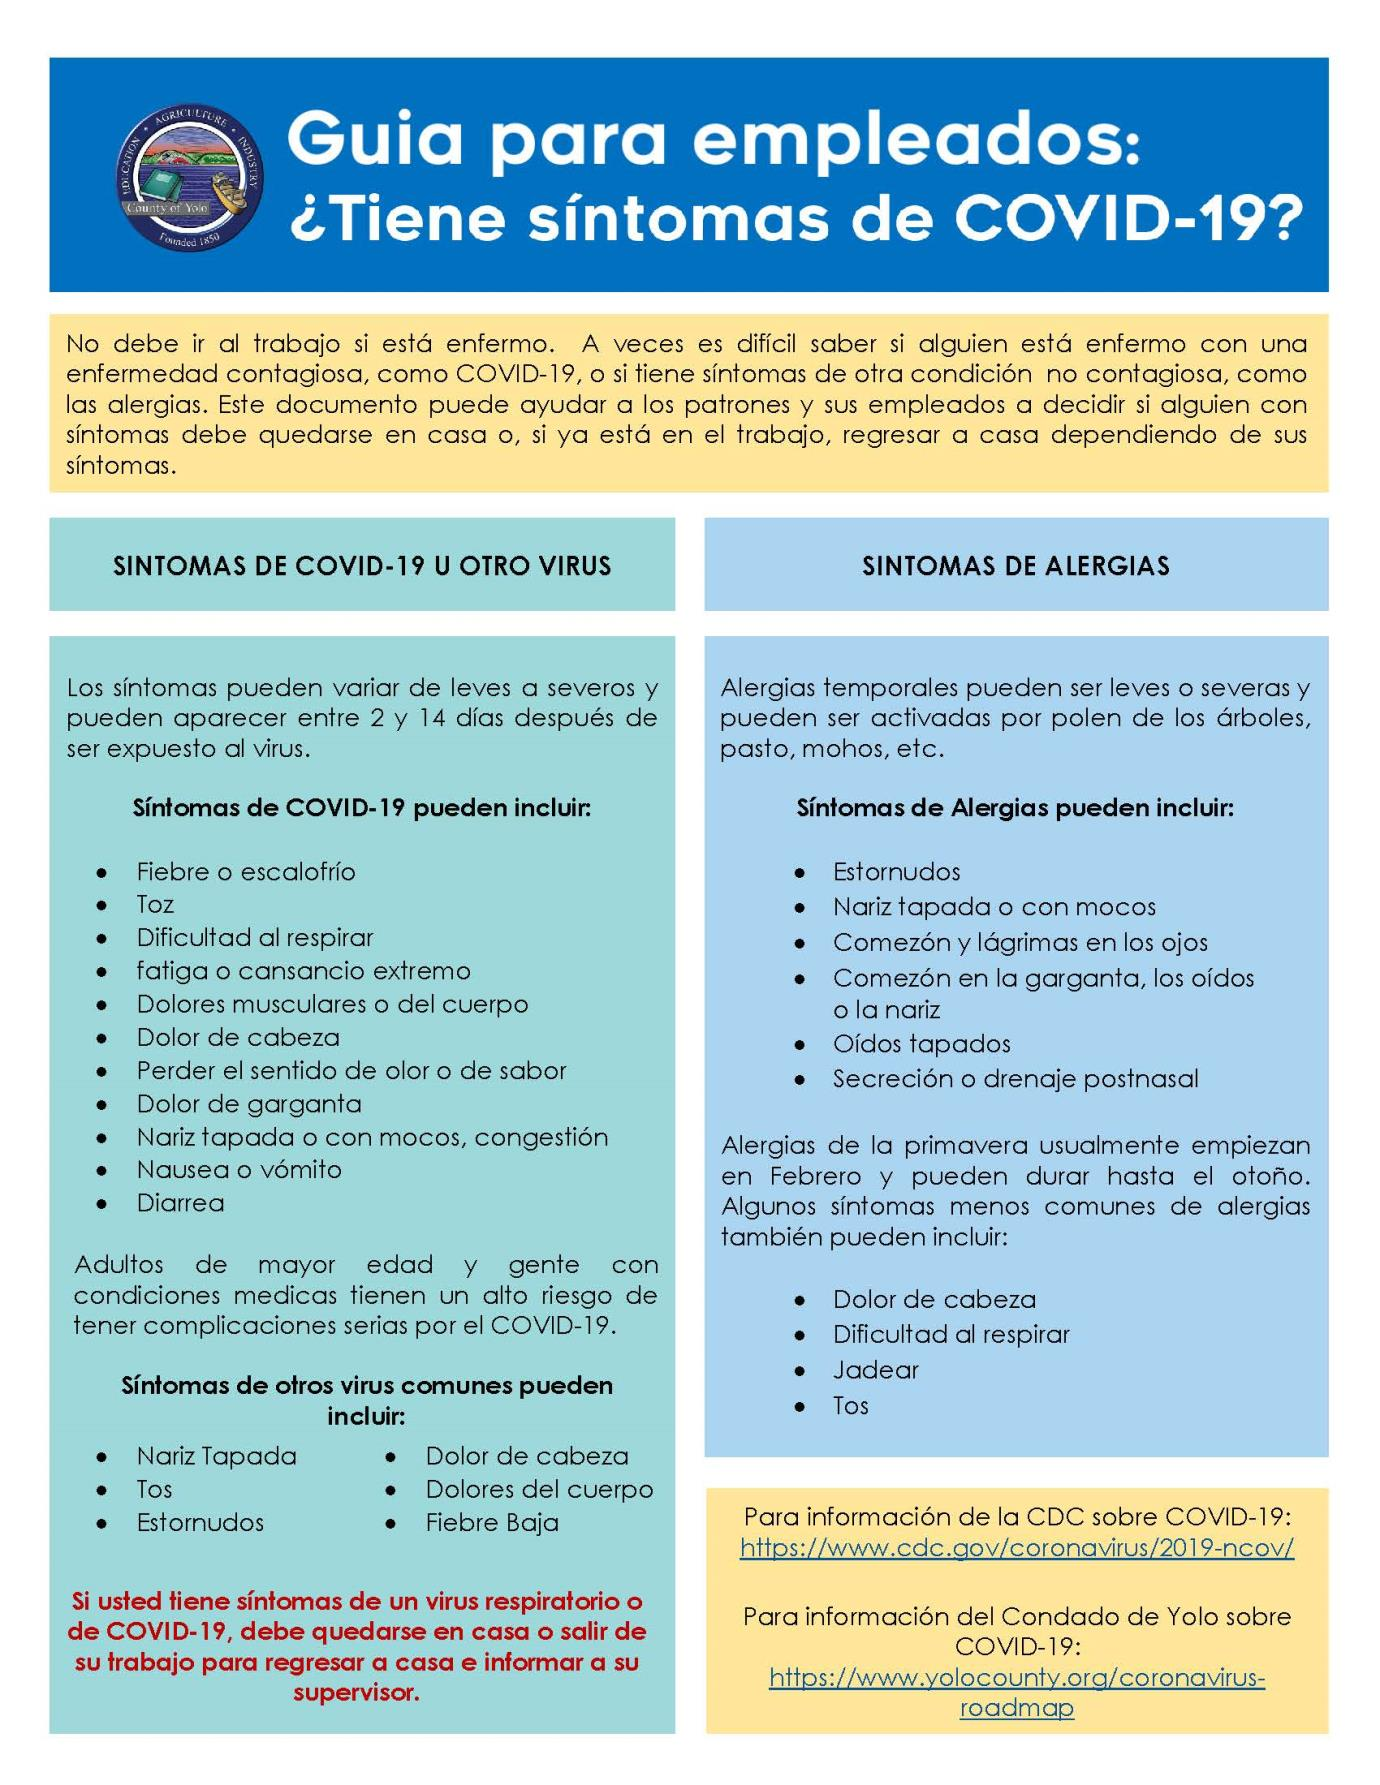 Employee Checklist - COVID-19 or Something Else (2 columns) SPANISH